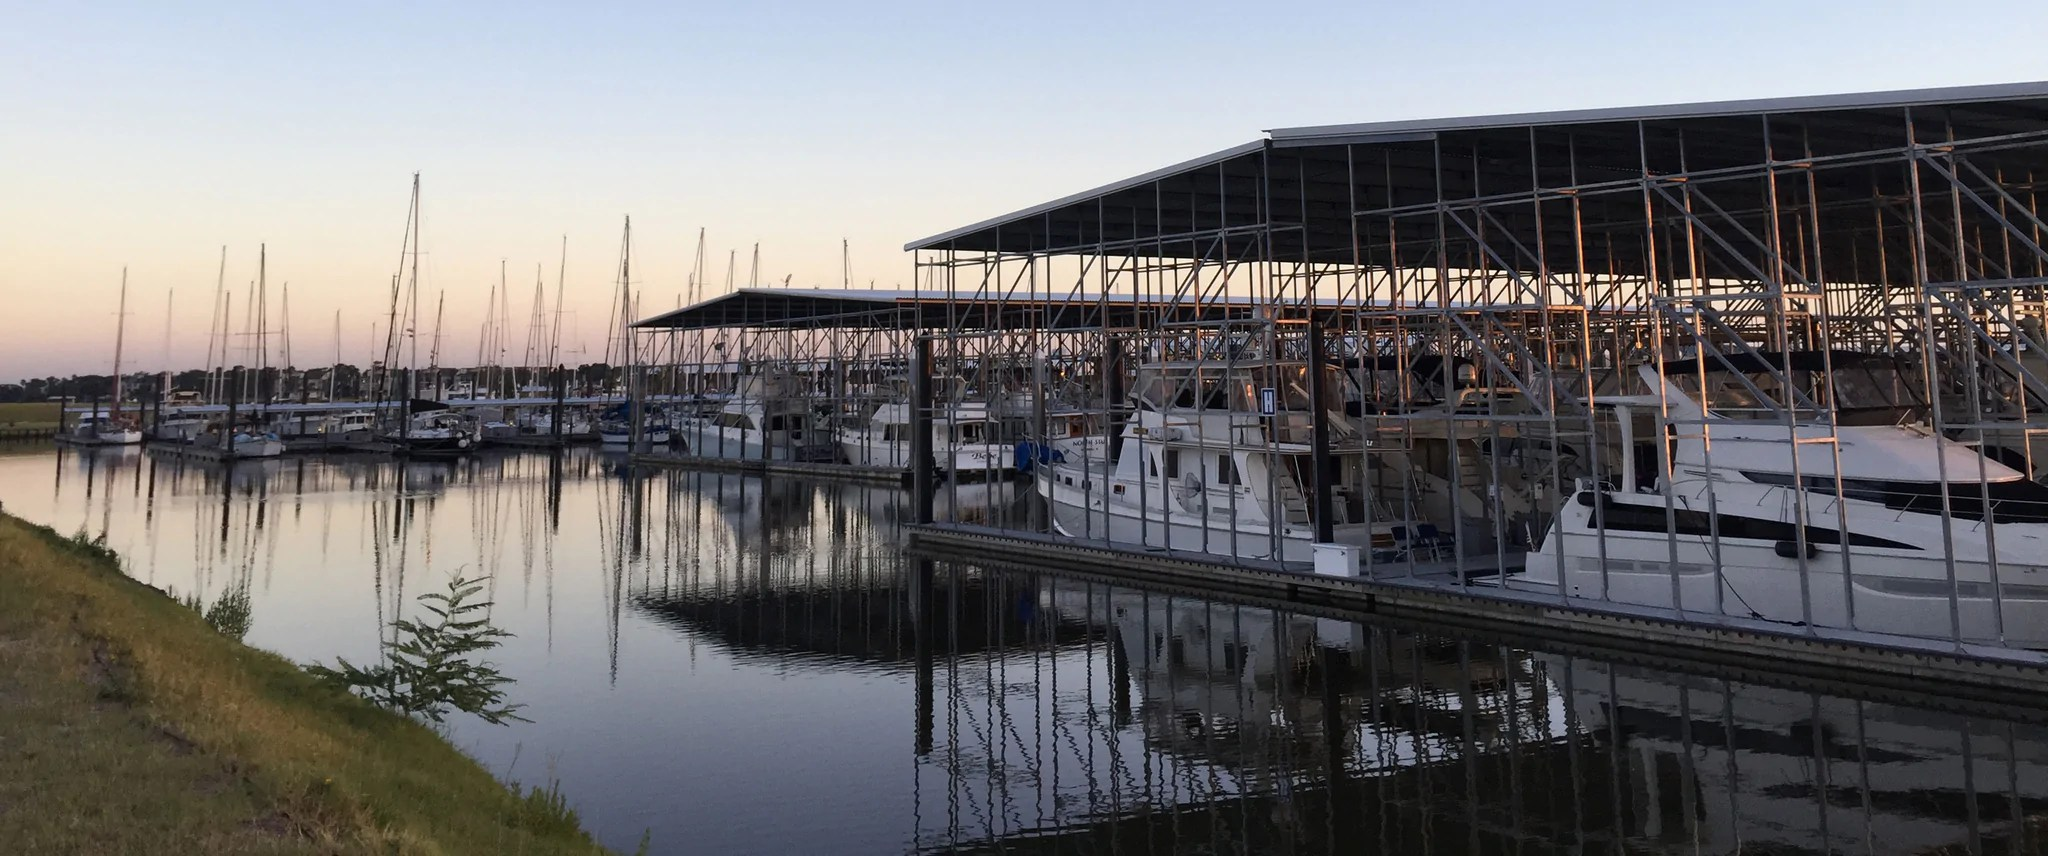 Dock Floats For Sale Seabrook Marina Covered Floating Boat Docks Slips Seabrook Texas